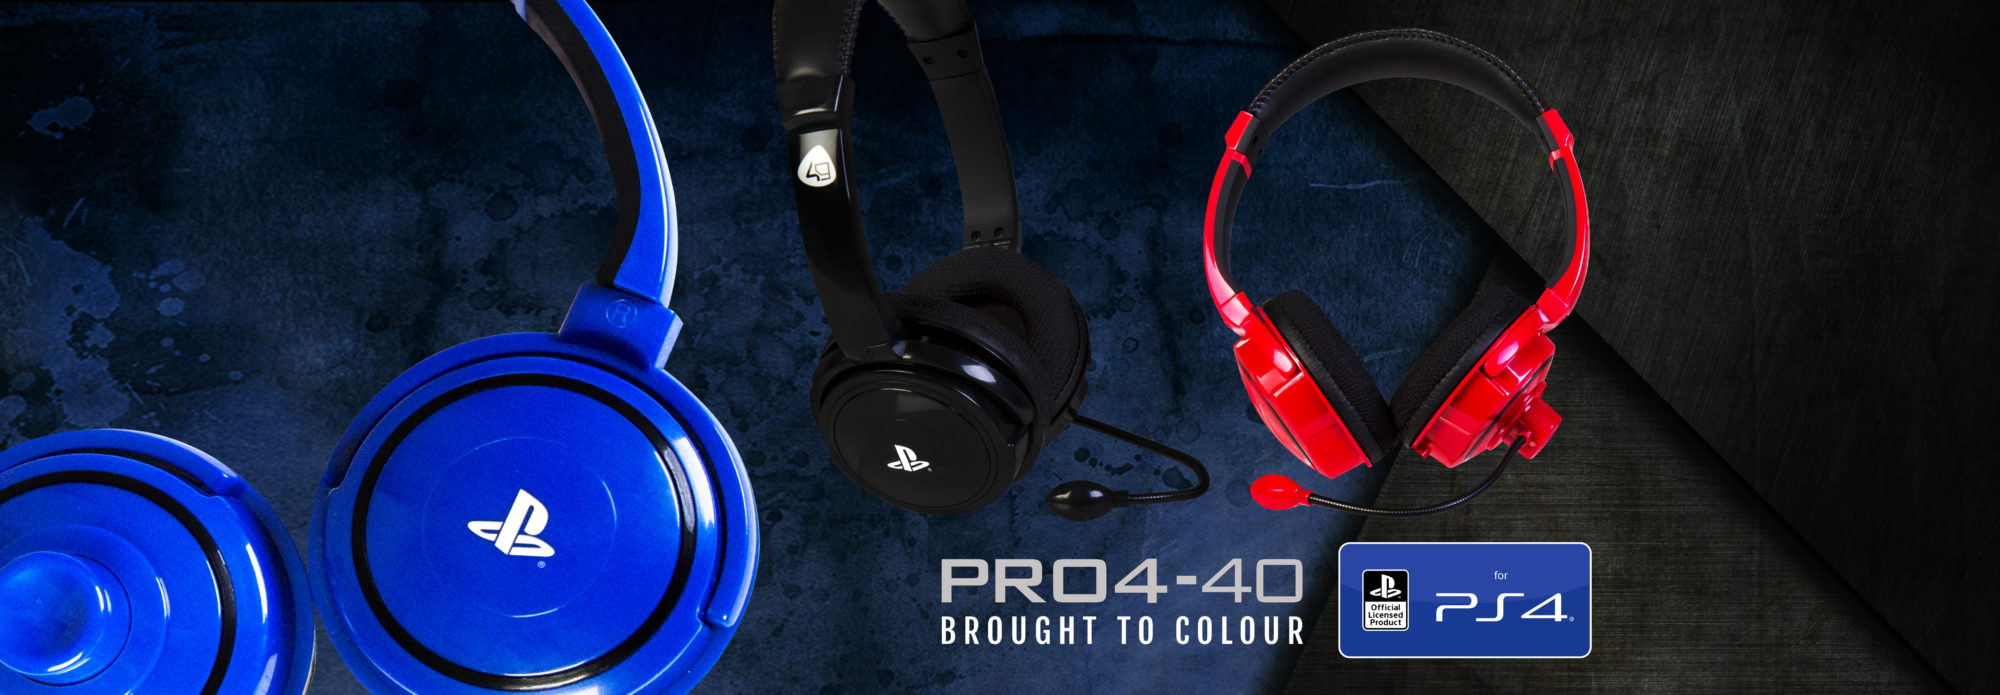 PRO4-40 Stereo Gaming Headset